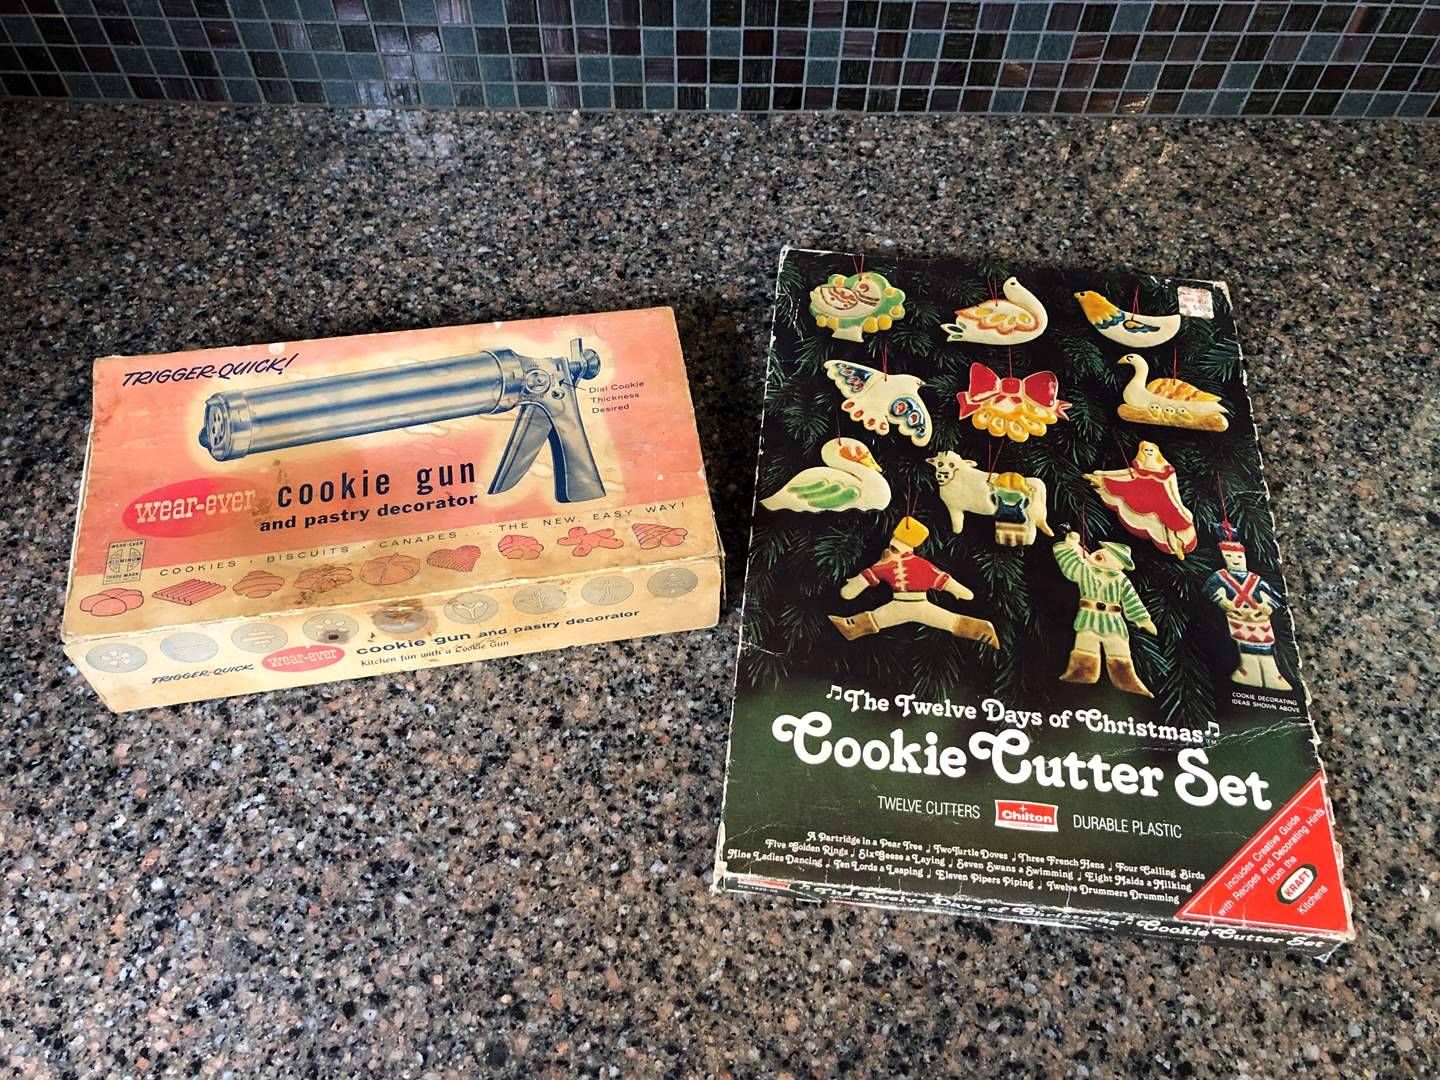 Lot # 143 - Vintage 12 Days of Christmas Cookie Cutter Set & Wear-Ever Cookie Gun (main image)